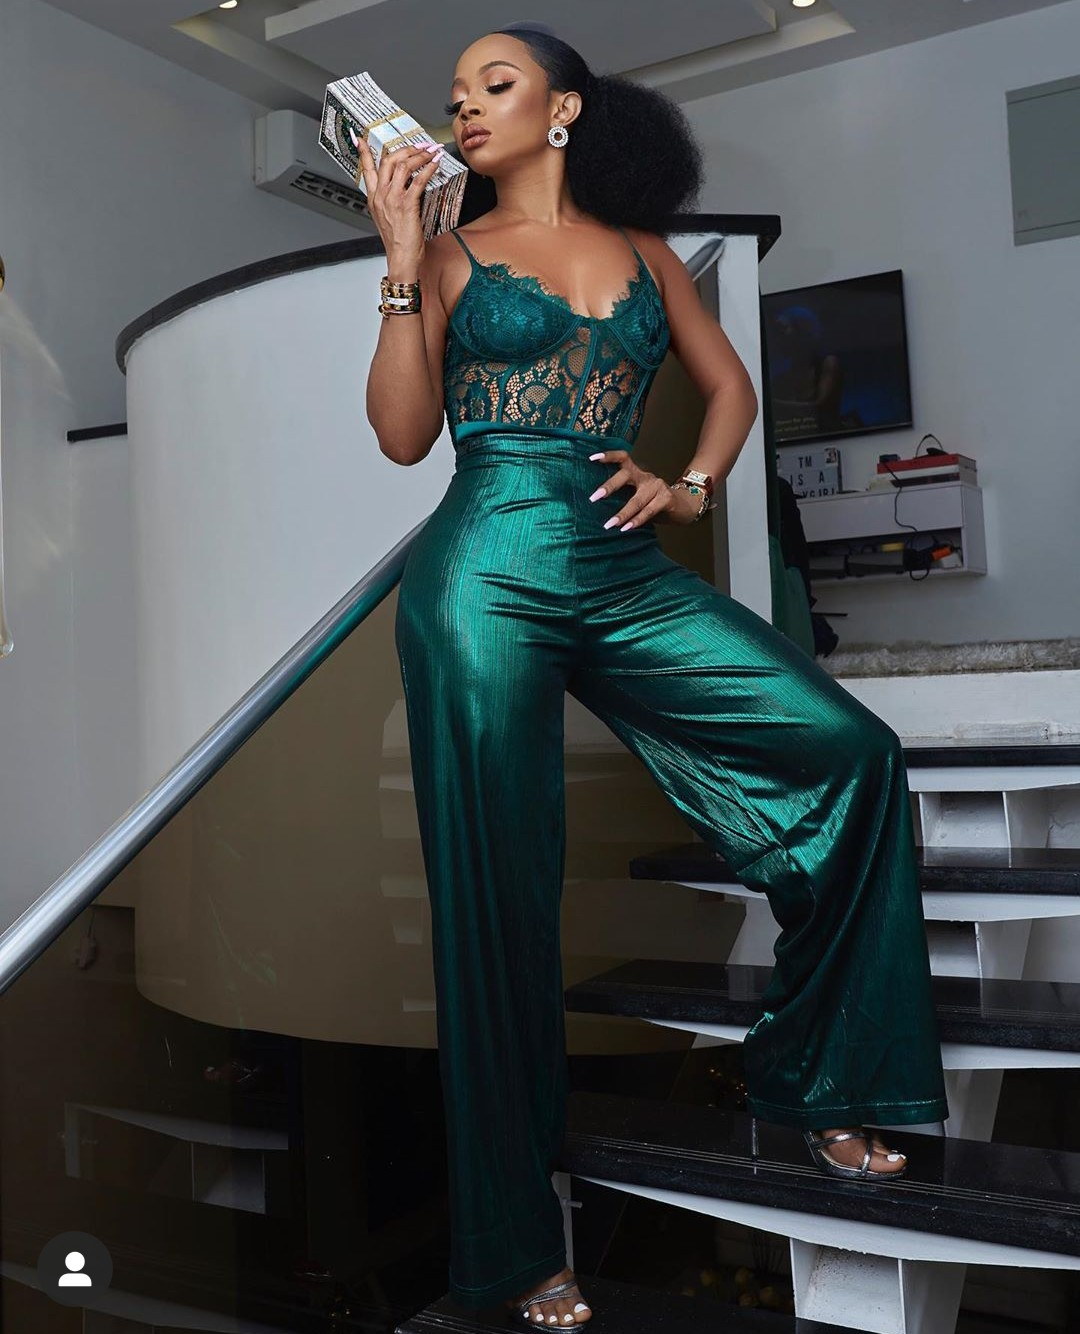 """""""If you cheat on me and think I will be ashamed, you haven't met me"""" – Toke Makinwa writes"""